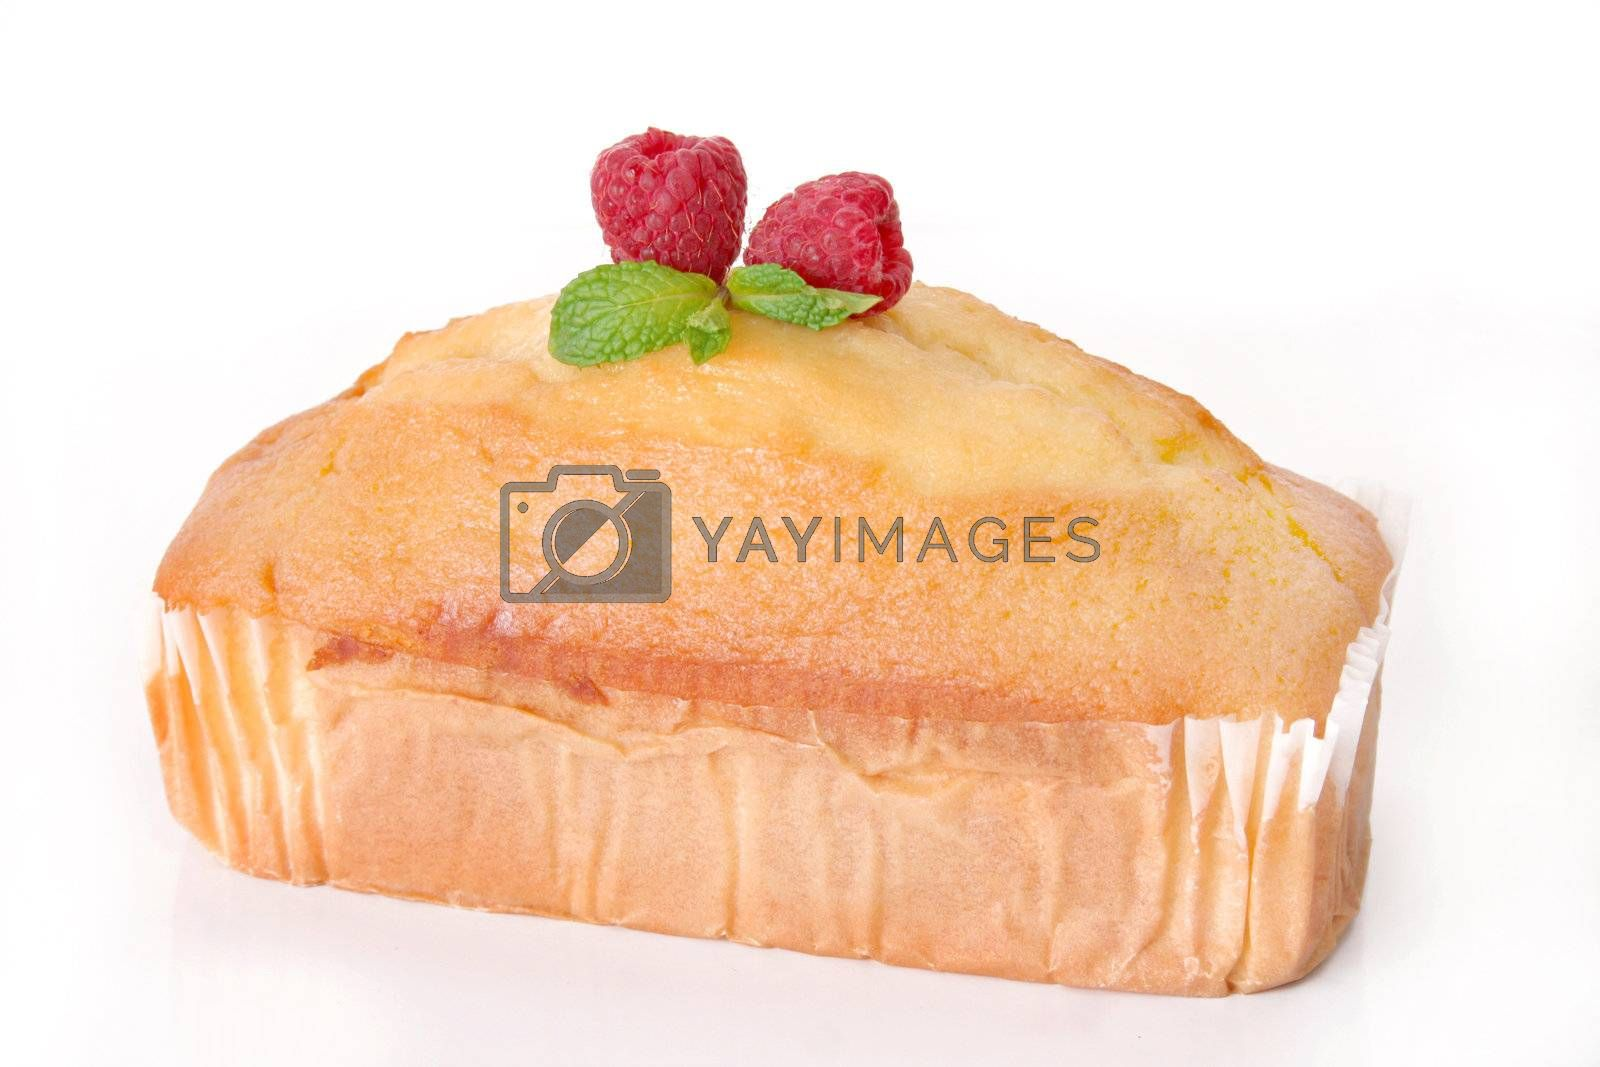 Delicious pound cake with raspberries and mint leaves as a garnish and shot on a white background.